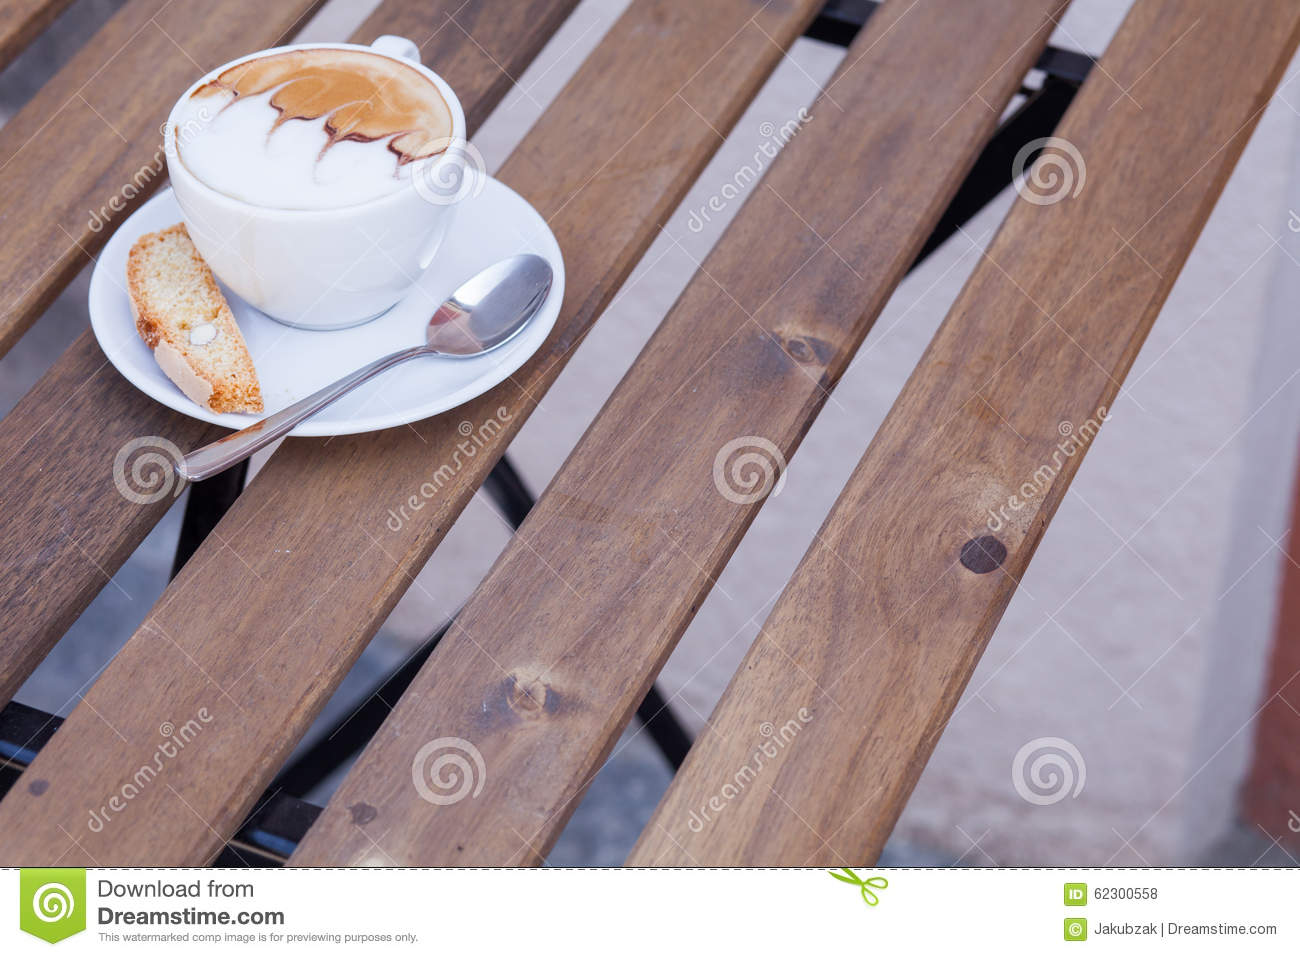 Decorated coffee with cookie and spoon on a wooden table